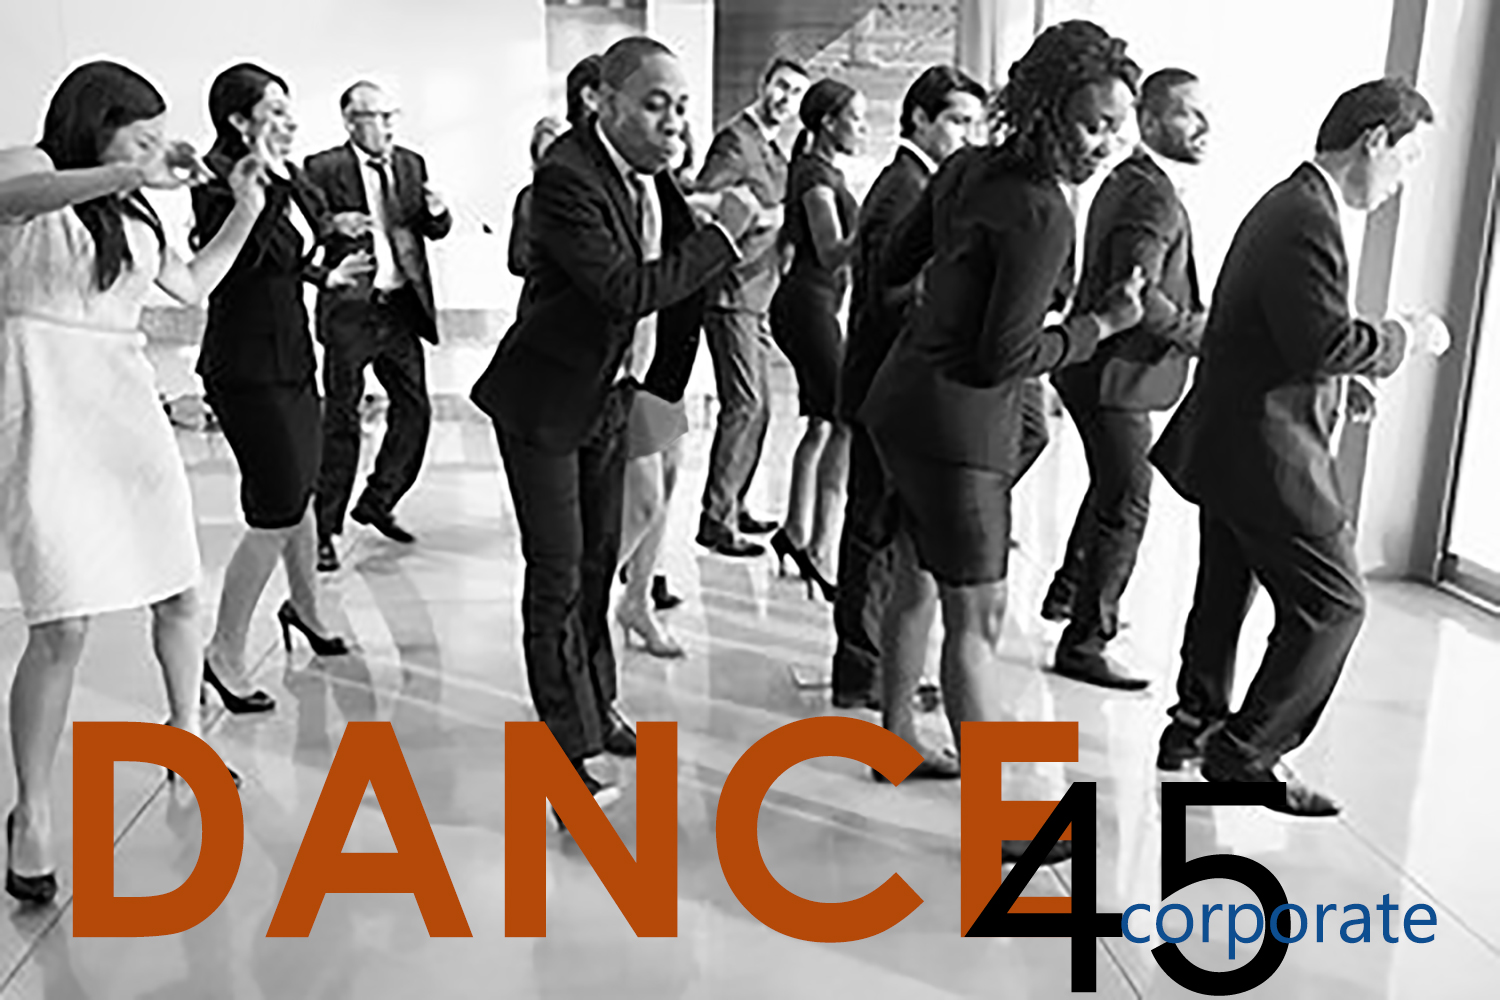 ::Corporate Dance - 45 minute [in office] dance and/or fitness classesSmall, medium, & enterprise businessesBenefits: team-building, health & wellness, workplace culture, and integrating into your company perks program.Coming October 1